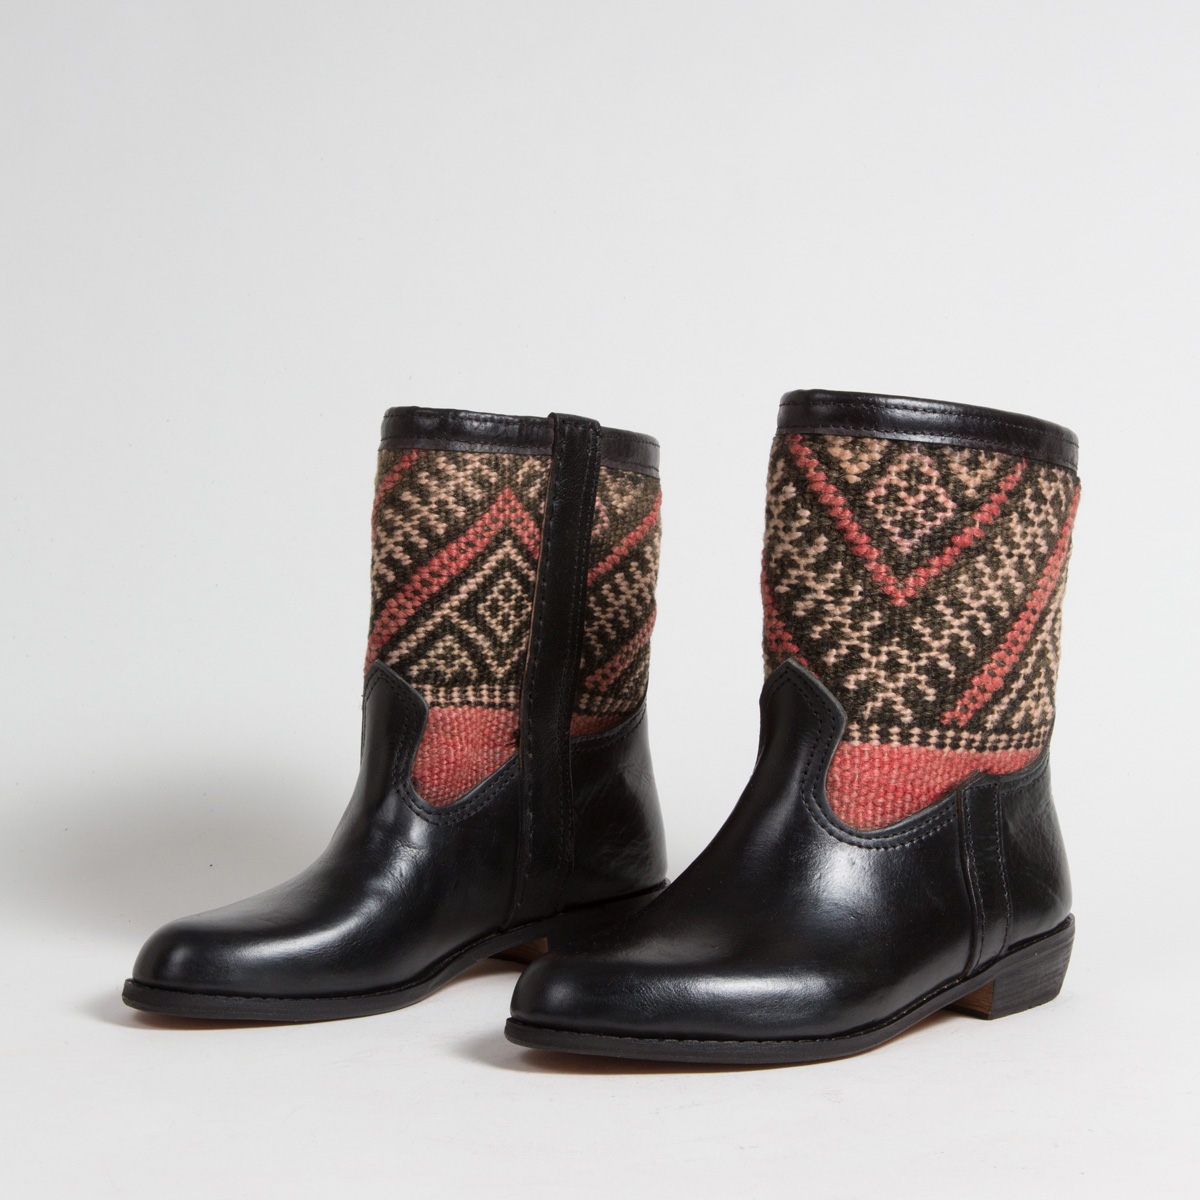 Bottines Kilim cuir mababouche artisanales (Réf. RPN4-37)